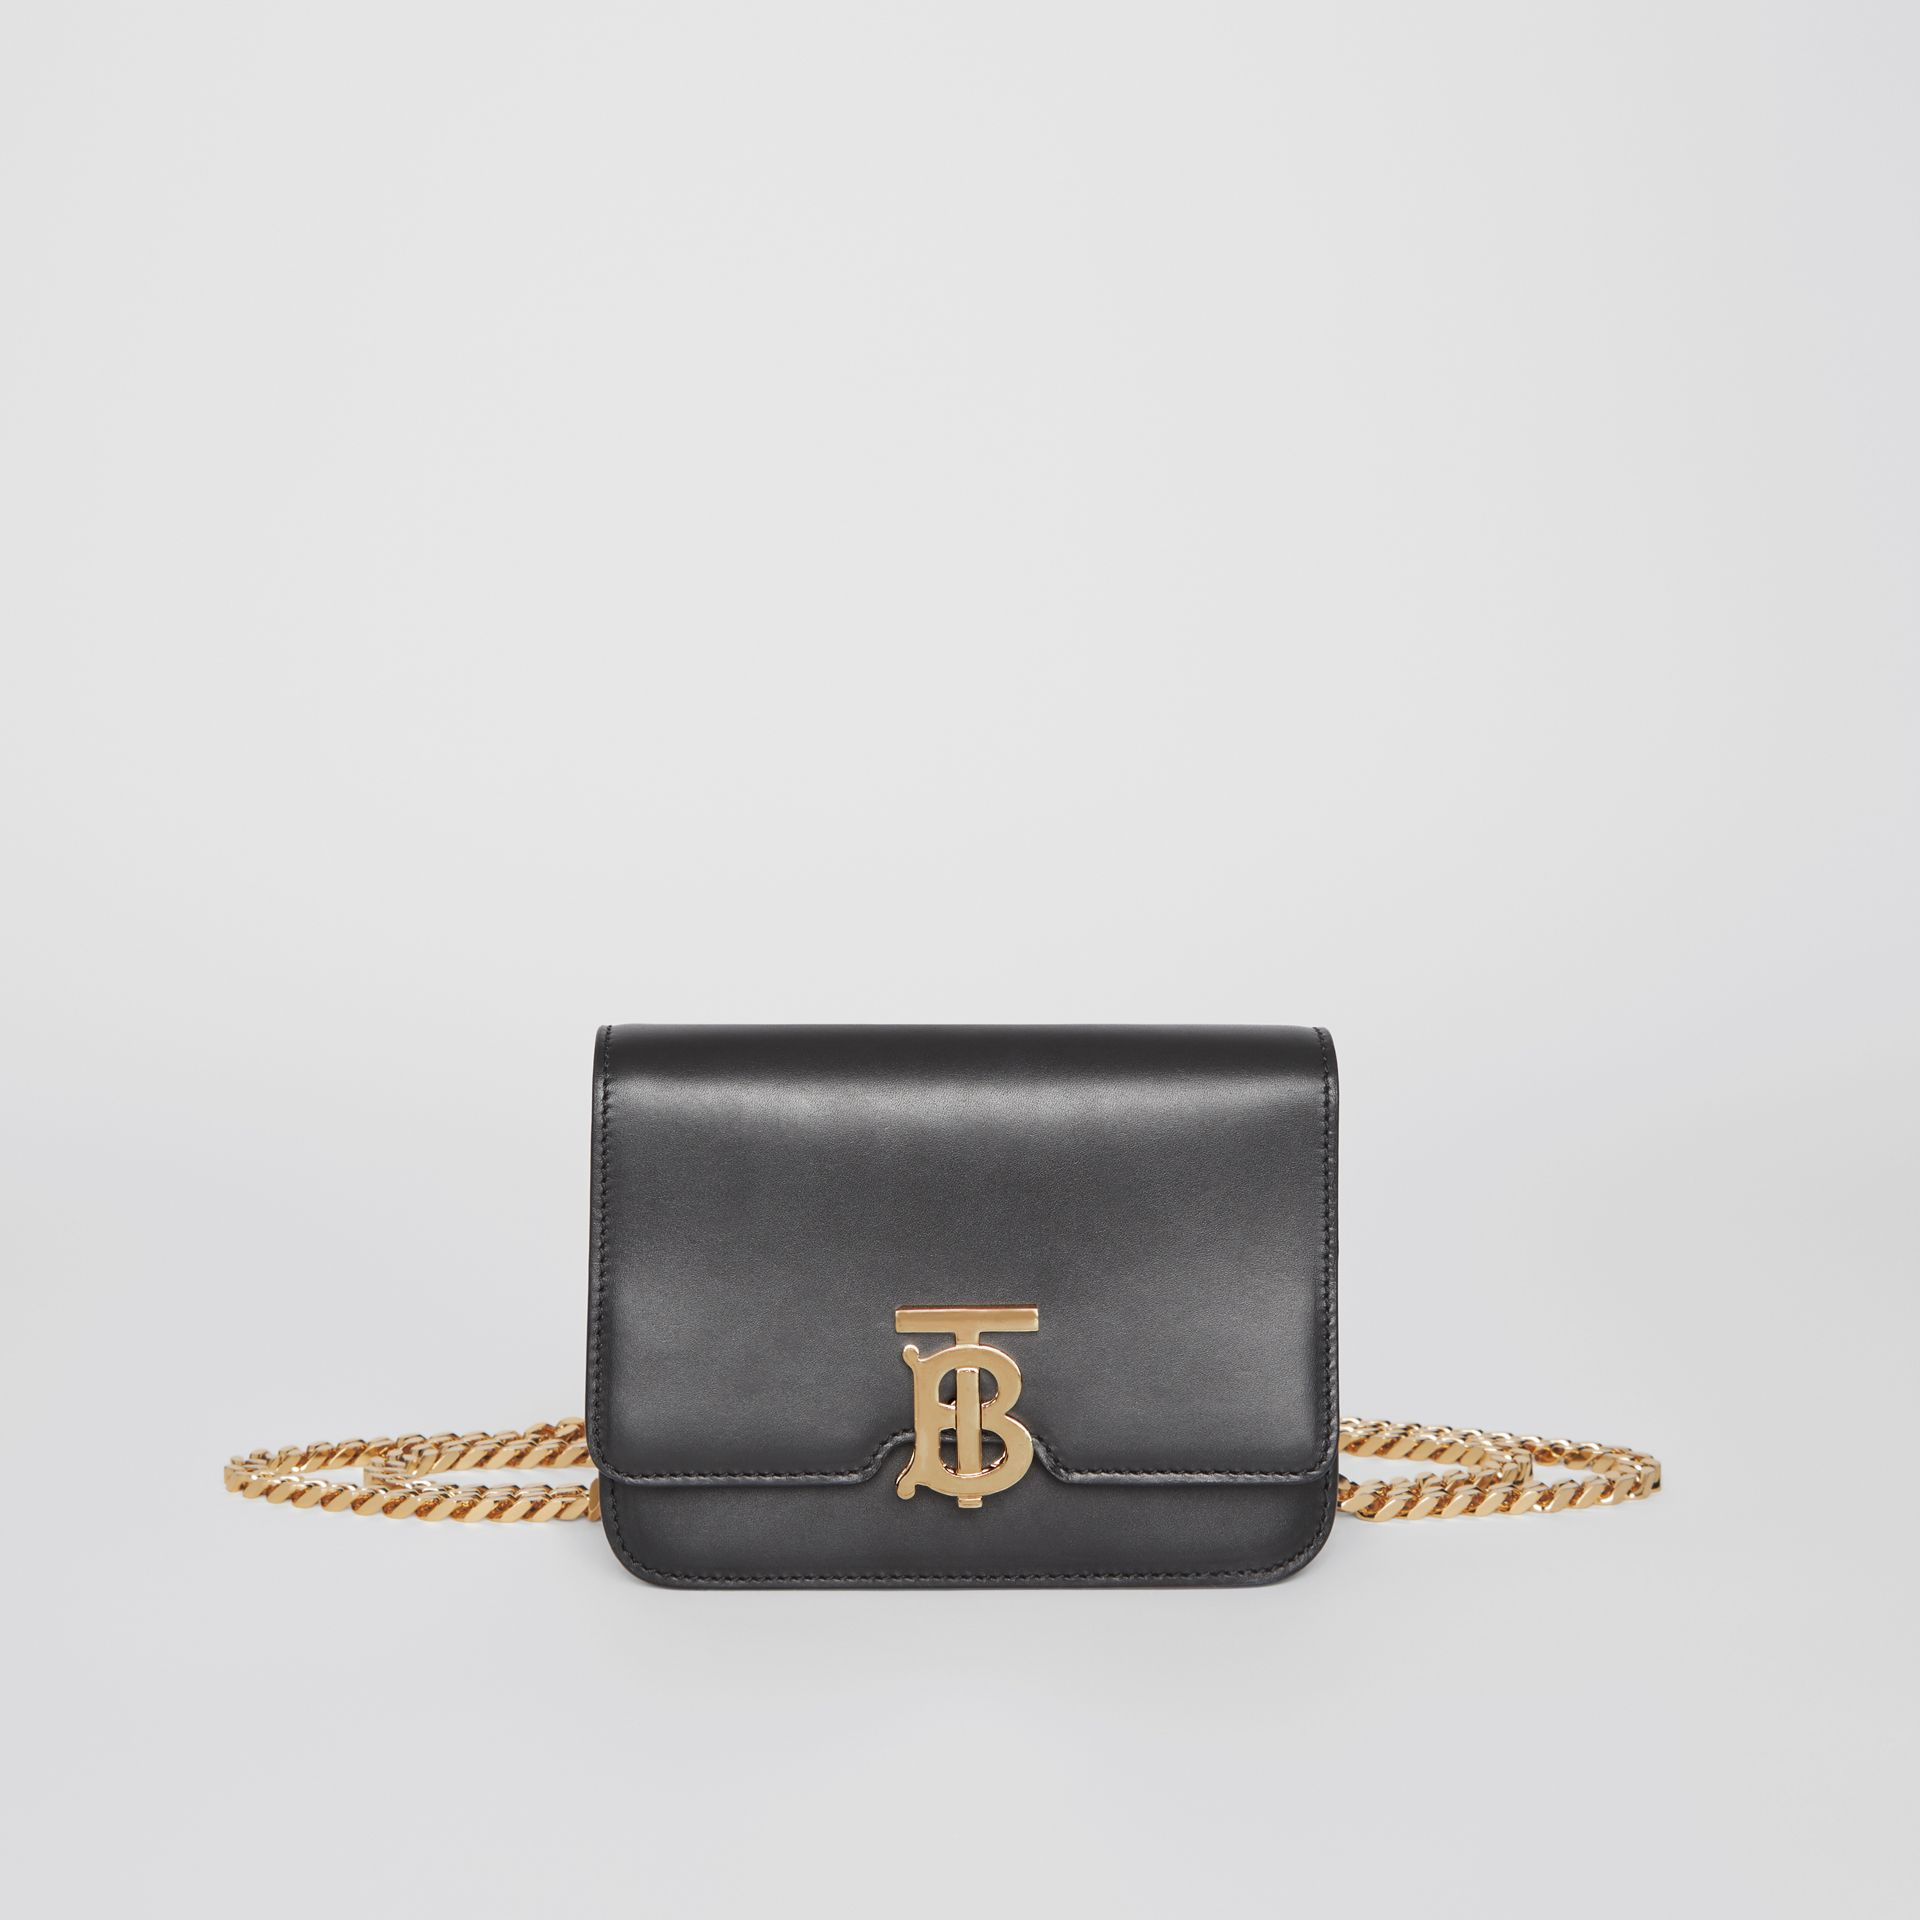 Belted Leather TB Bag in Black - Women | Burberry Hong Kong - gallery image 0